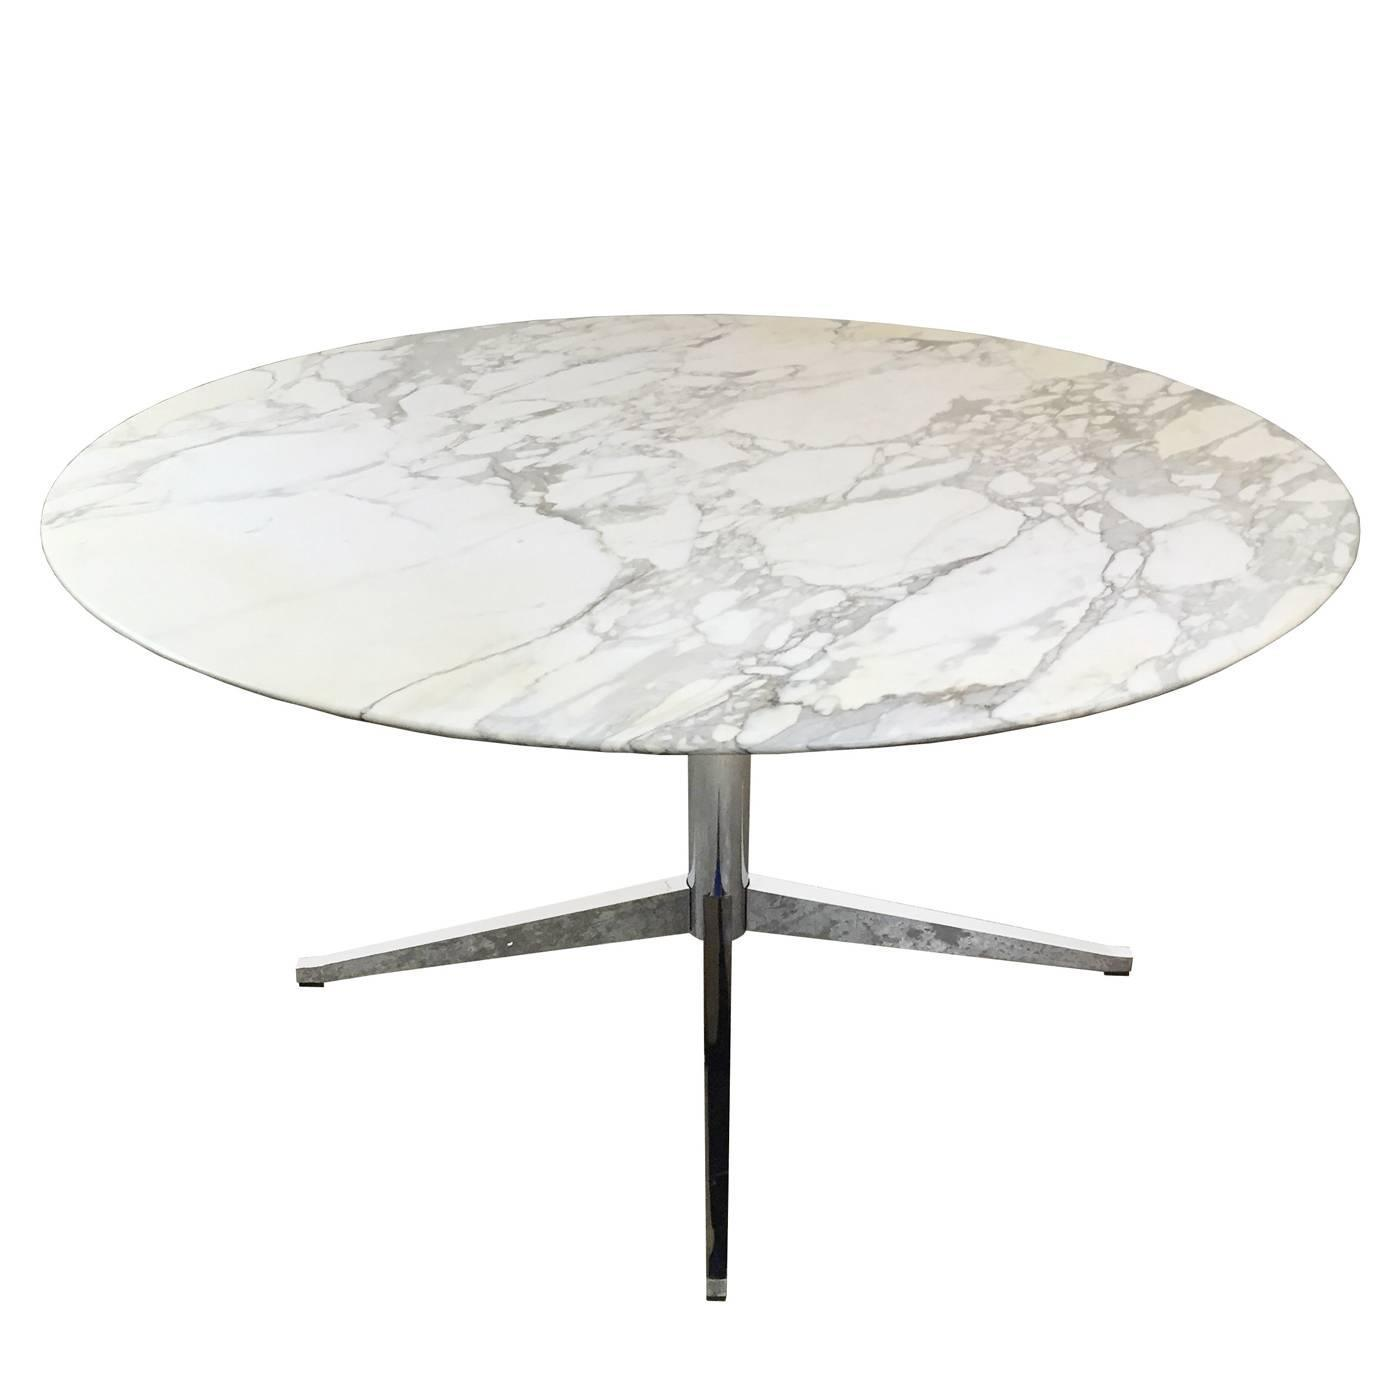 Round carrara marble dining conference table by florence for Round stone top dining table